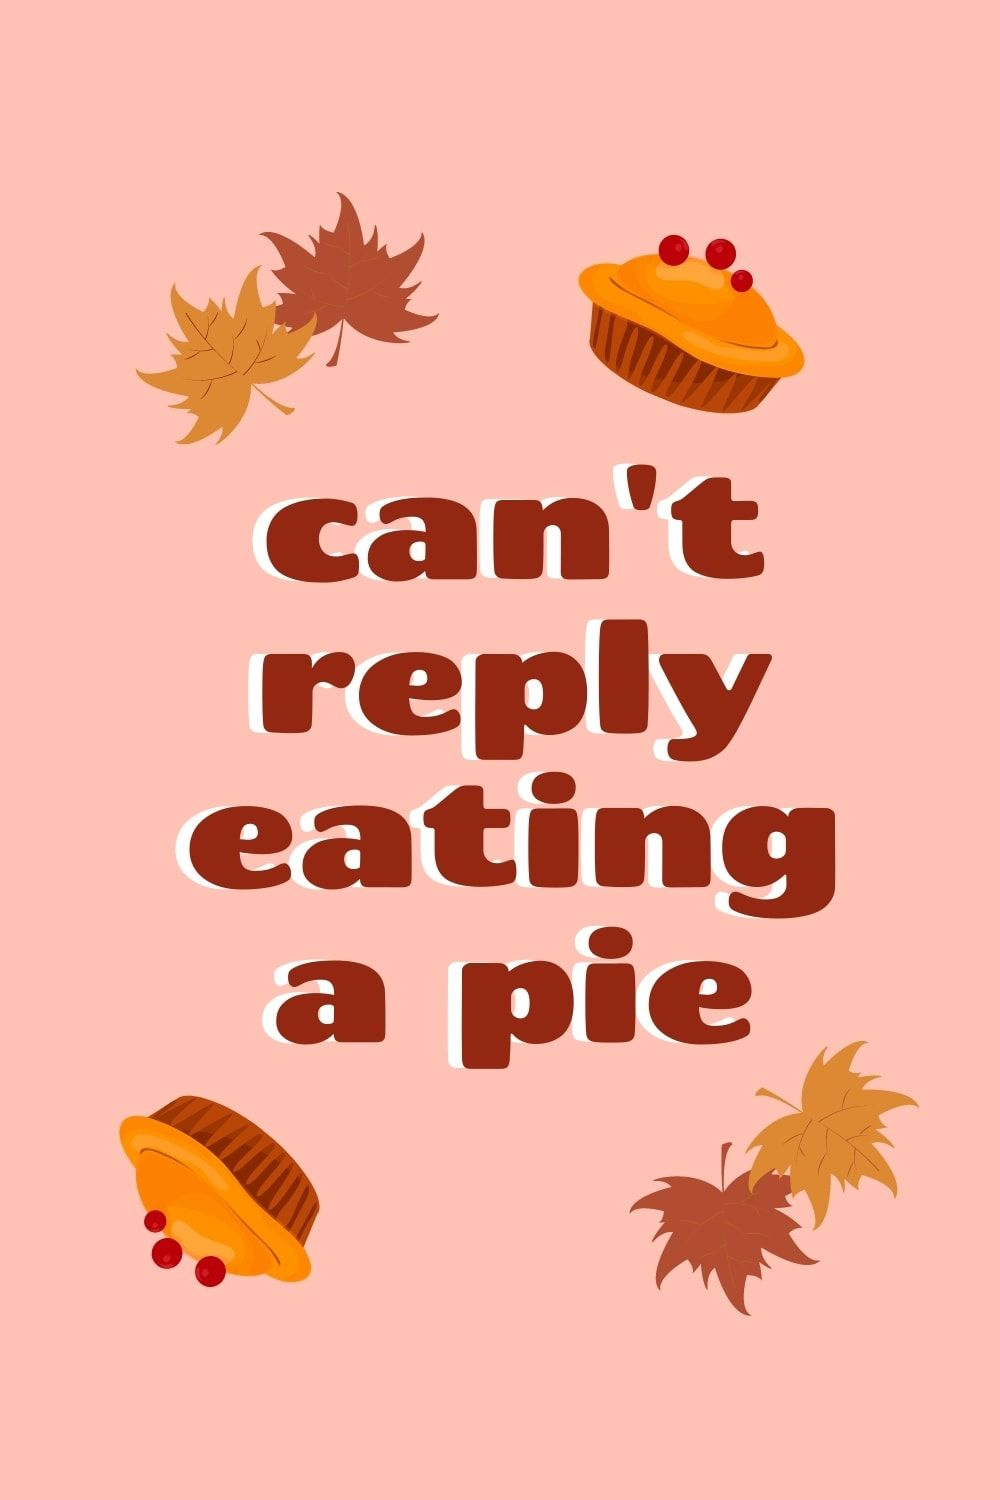 Top 50 Fall Captions For Instagram Cute And Funny Captions Instagram Captions Fall Instagram Captions Funny Instagram Captions